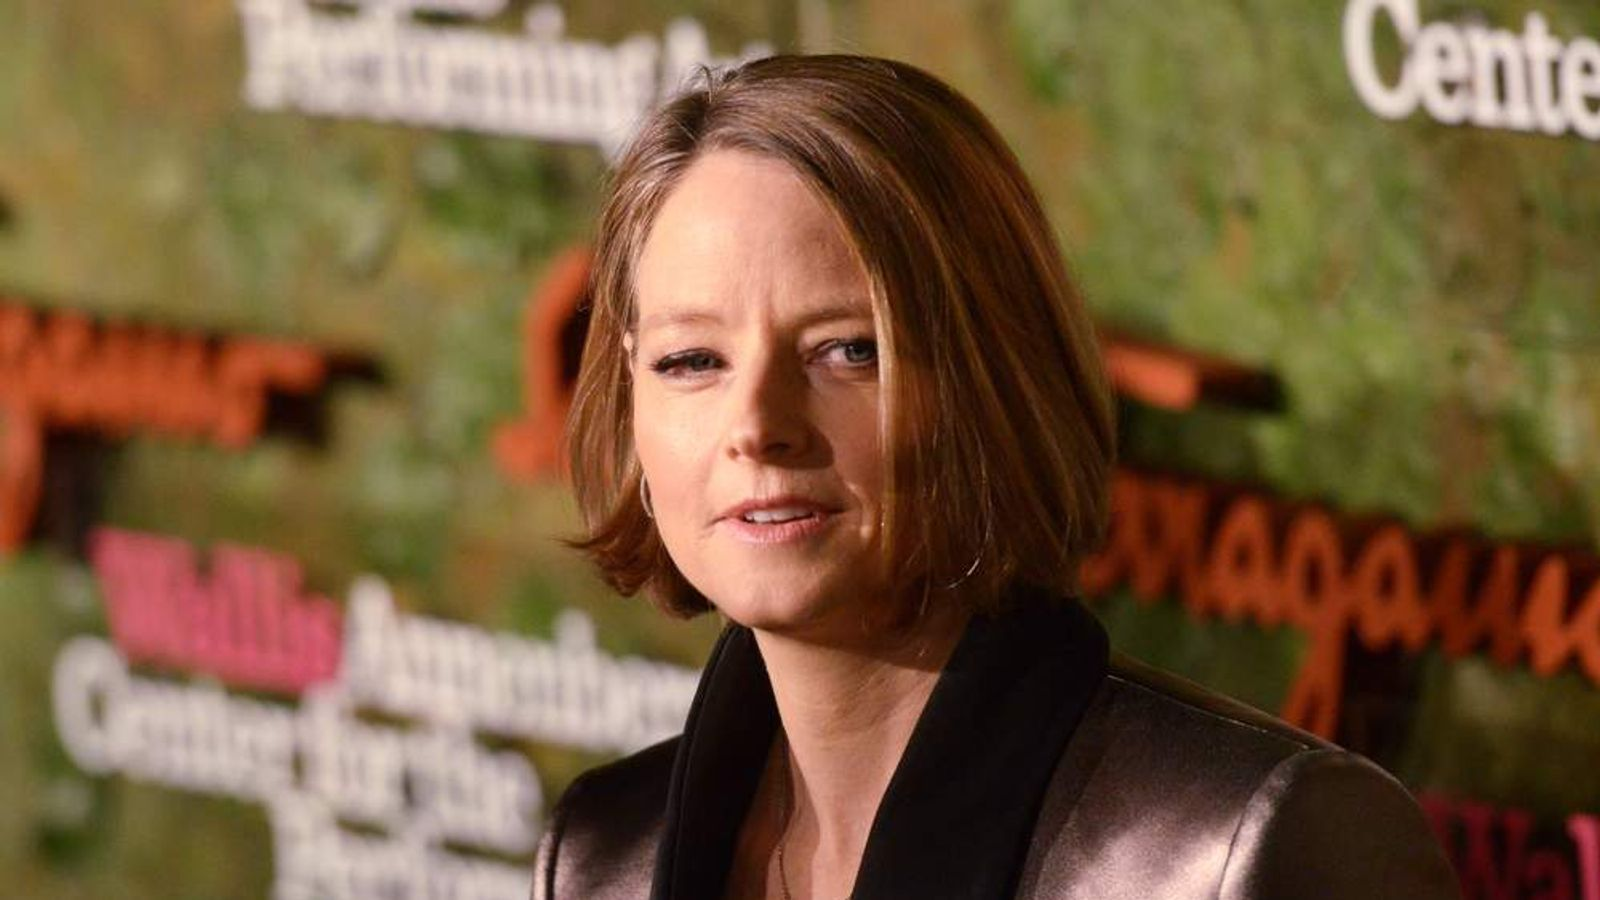 Actress Jodie Foster arrives at the Wallis Annenberg Center